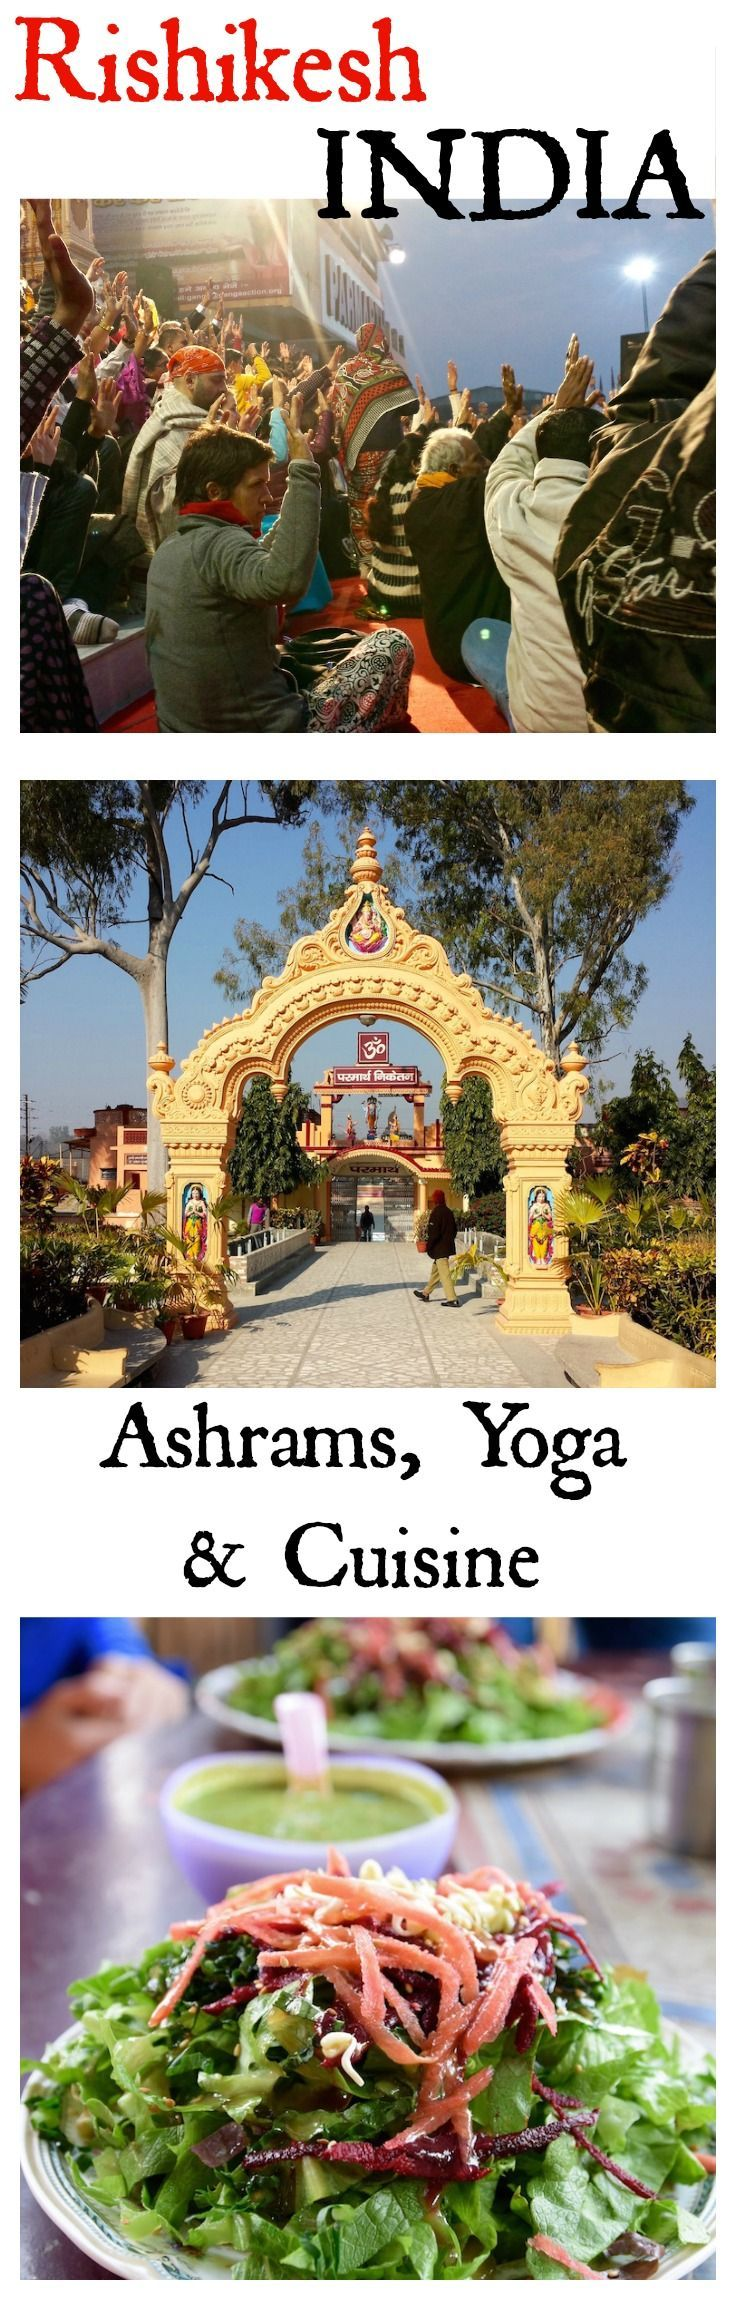 The ashrams, yoga and food of Rishikesh India | TastingPage.com